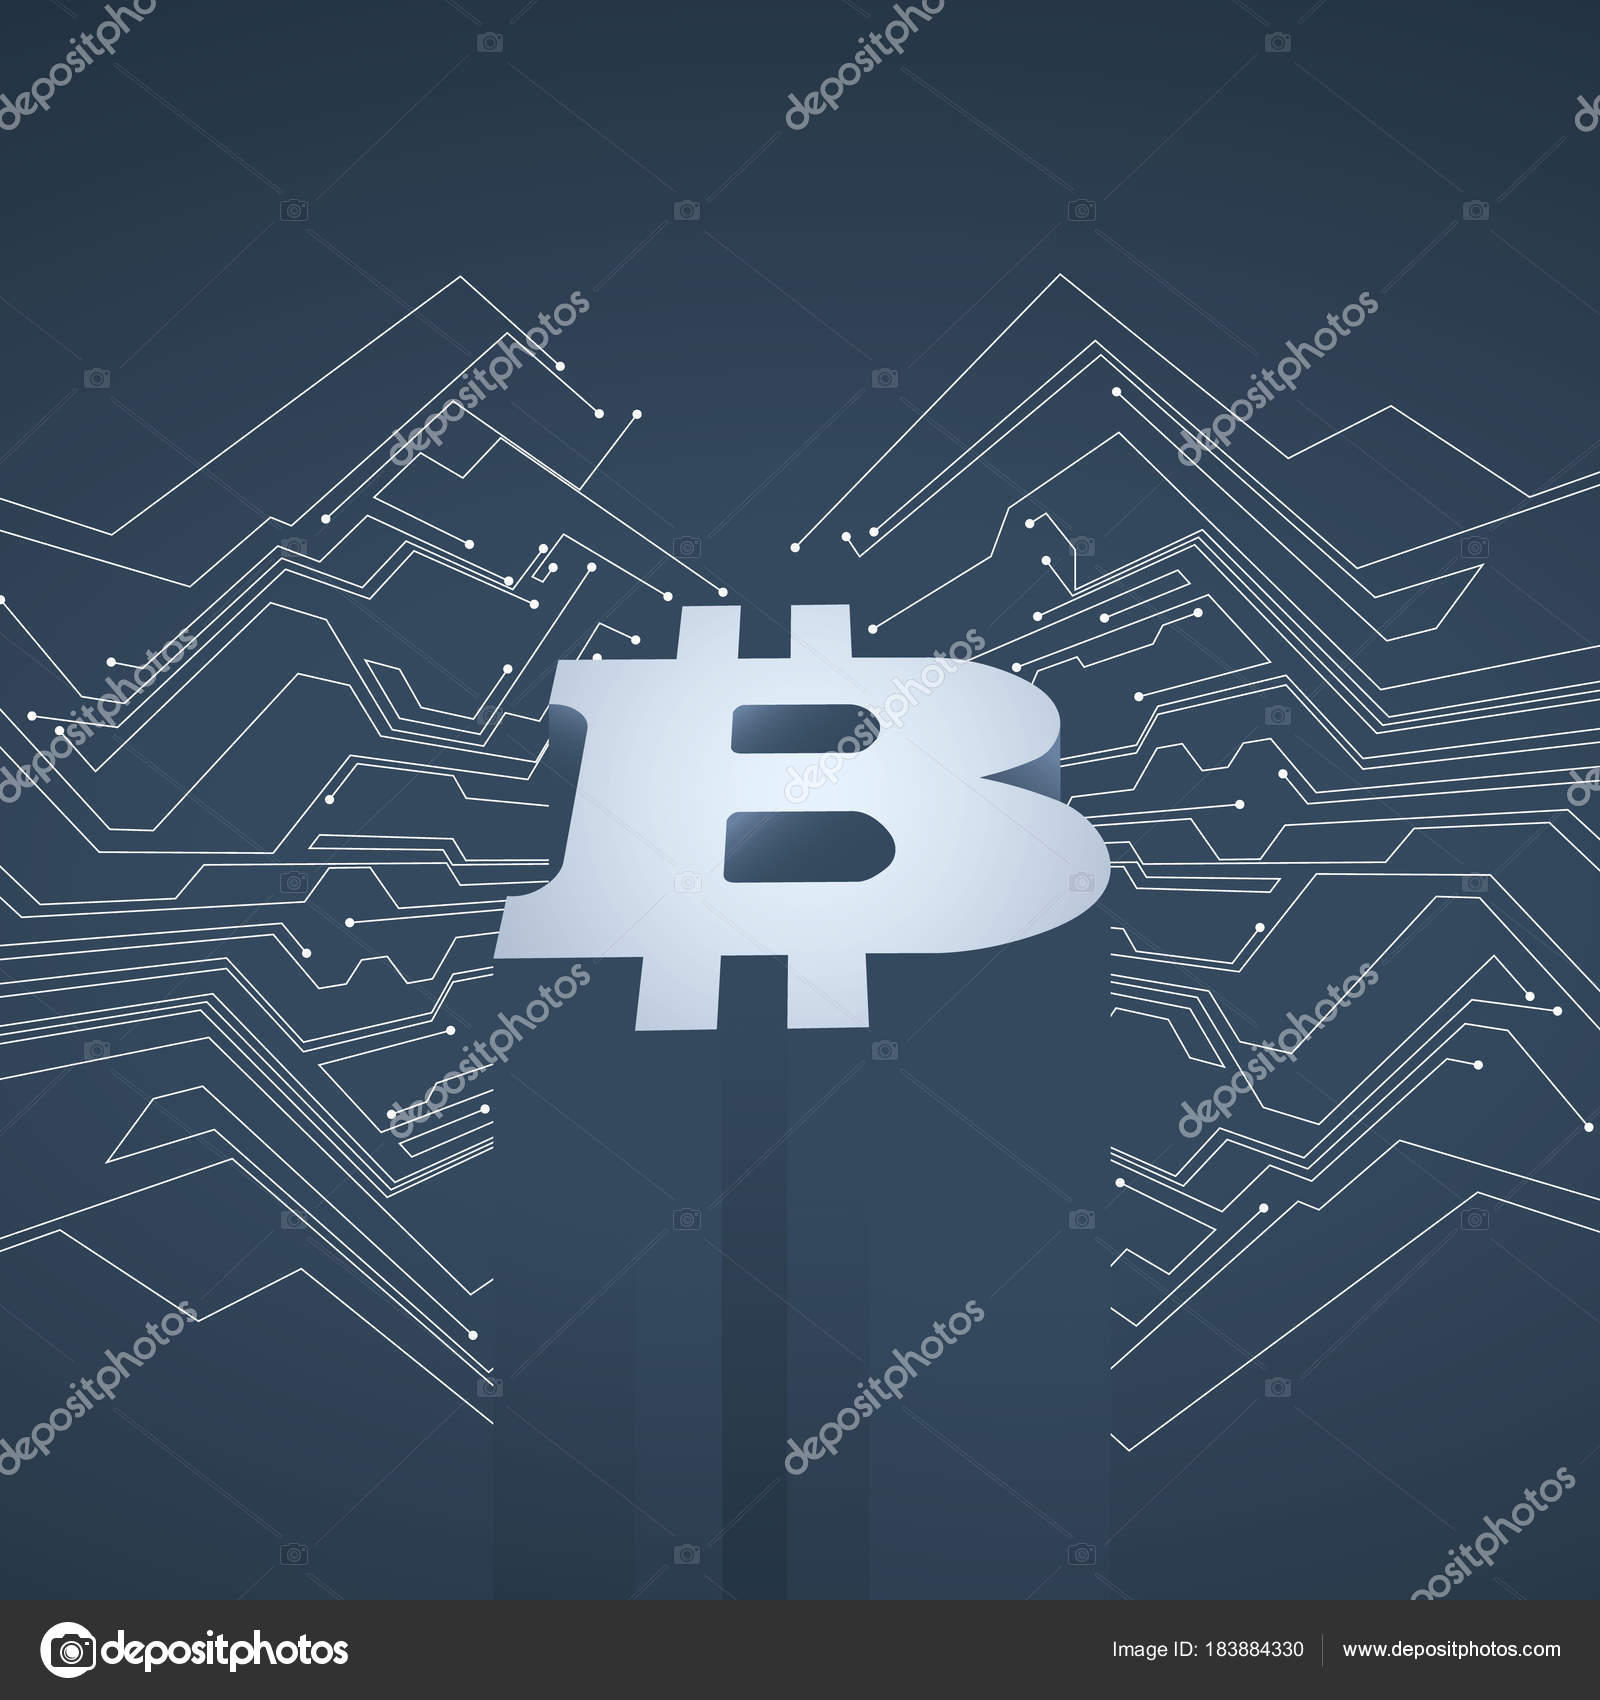 what is the symbol for bitcoin futures